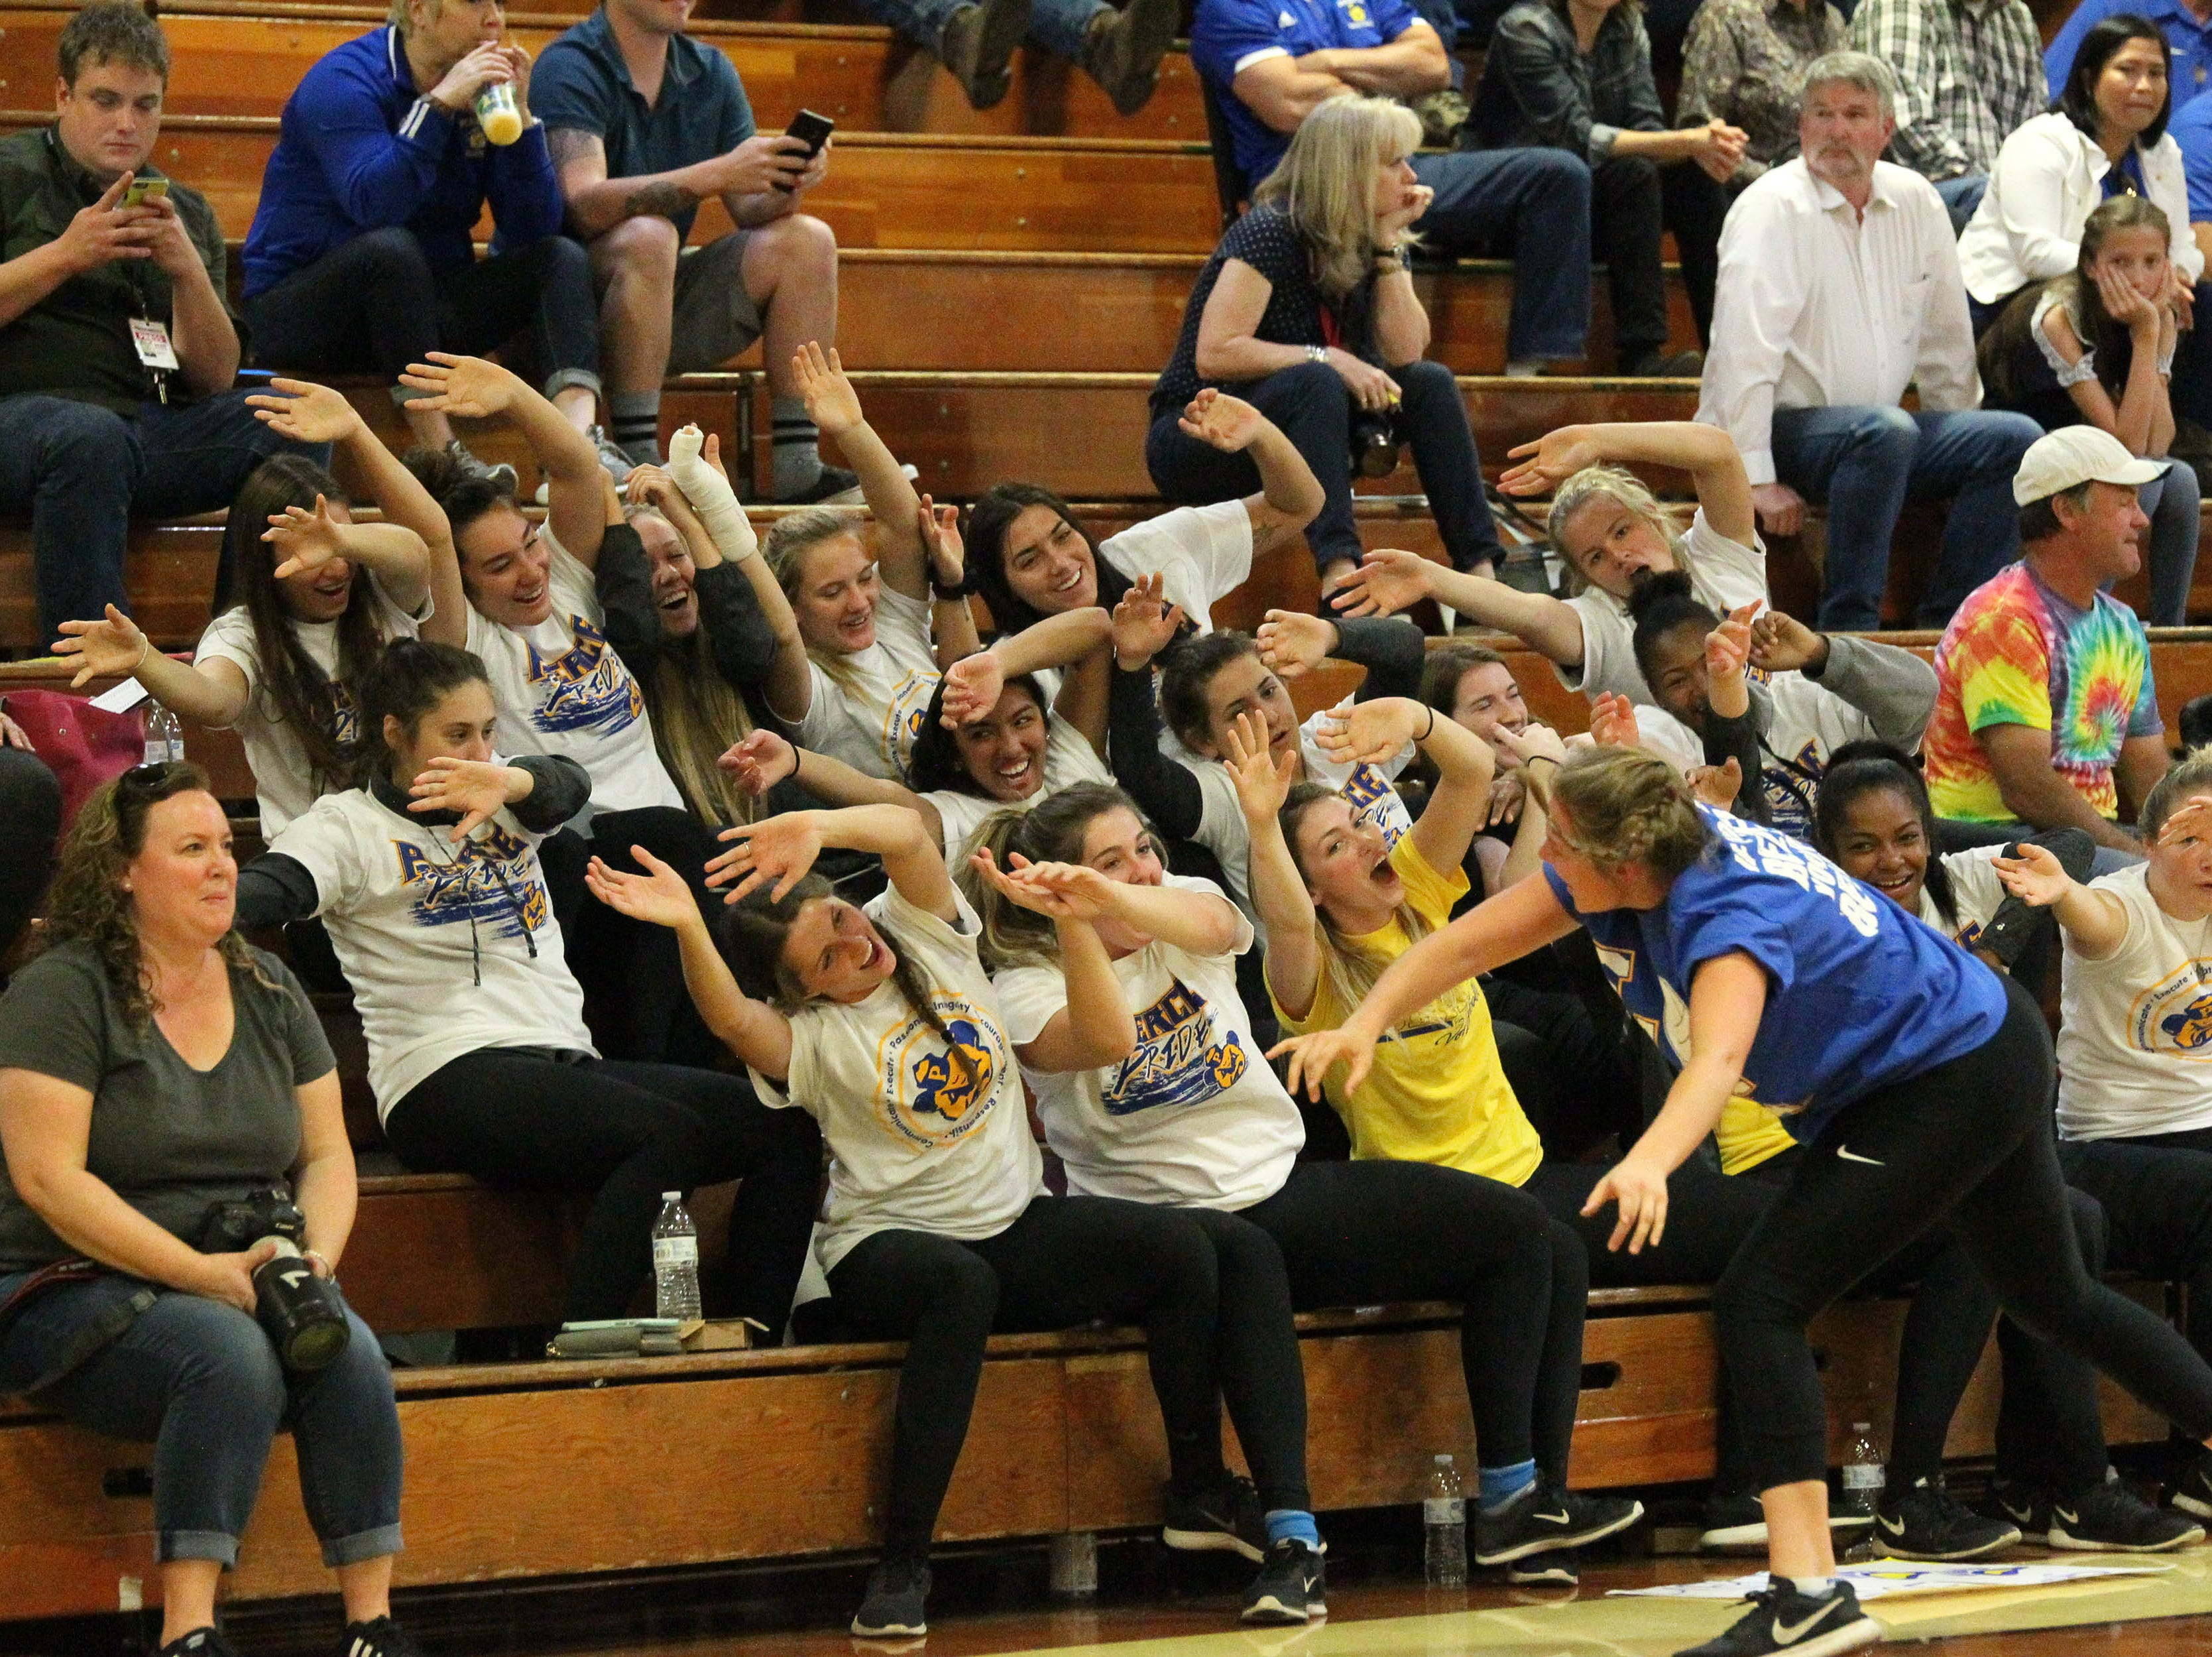 Fans of Pierce cheer during the Division IV Northern Section volleyball championship on Saturday, Nov. 3. Pierce won the match in three sets over U-Prep, 25-23, 25-21, 25-22.